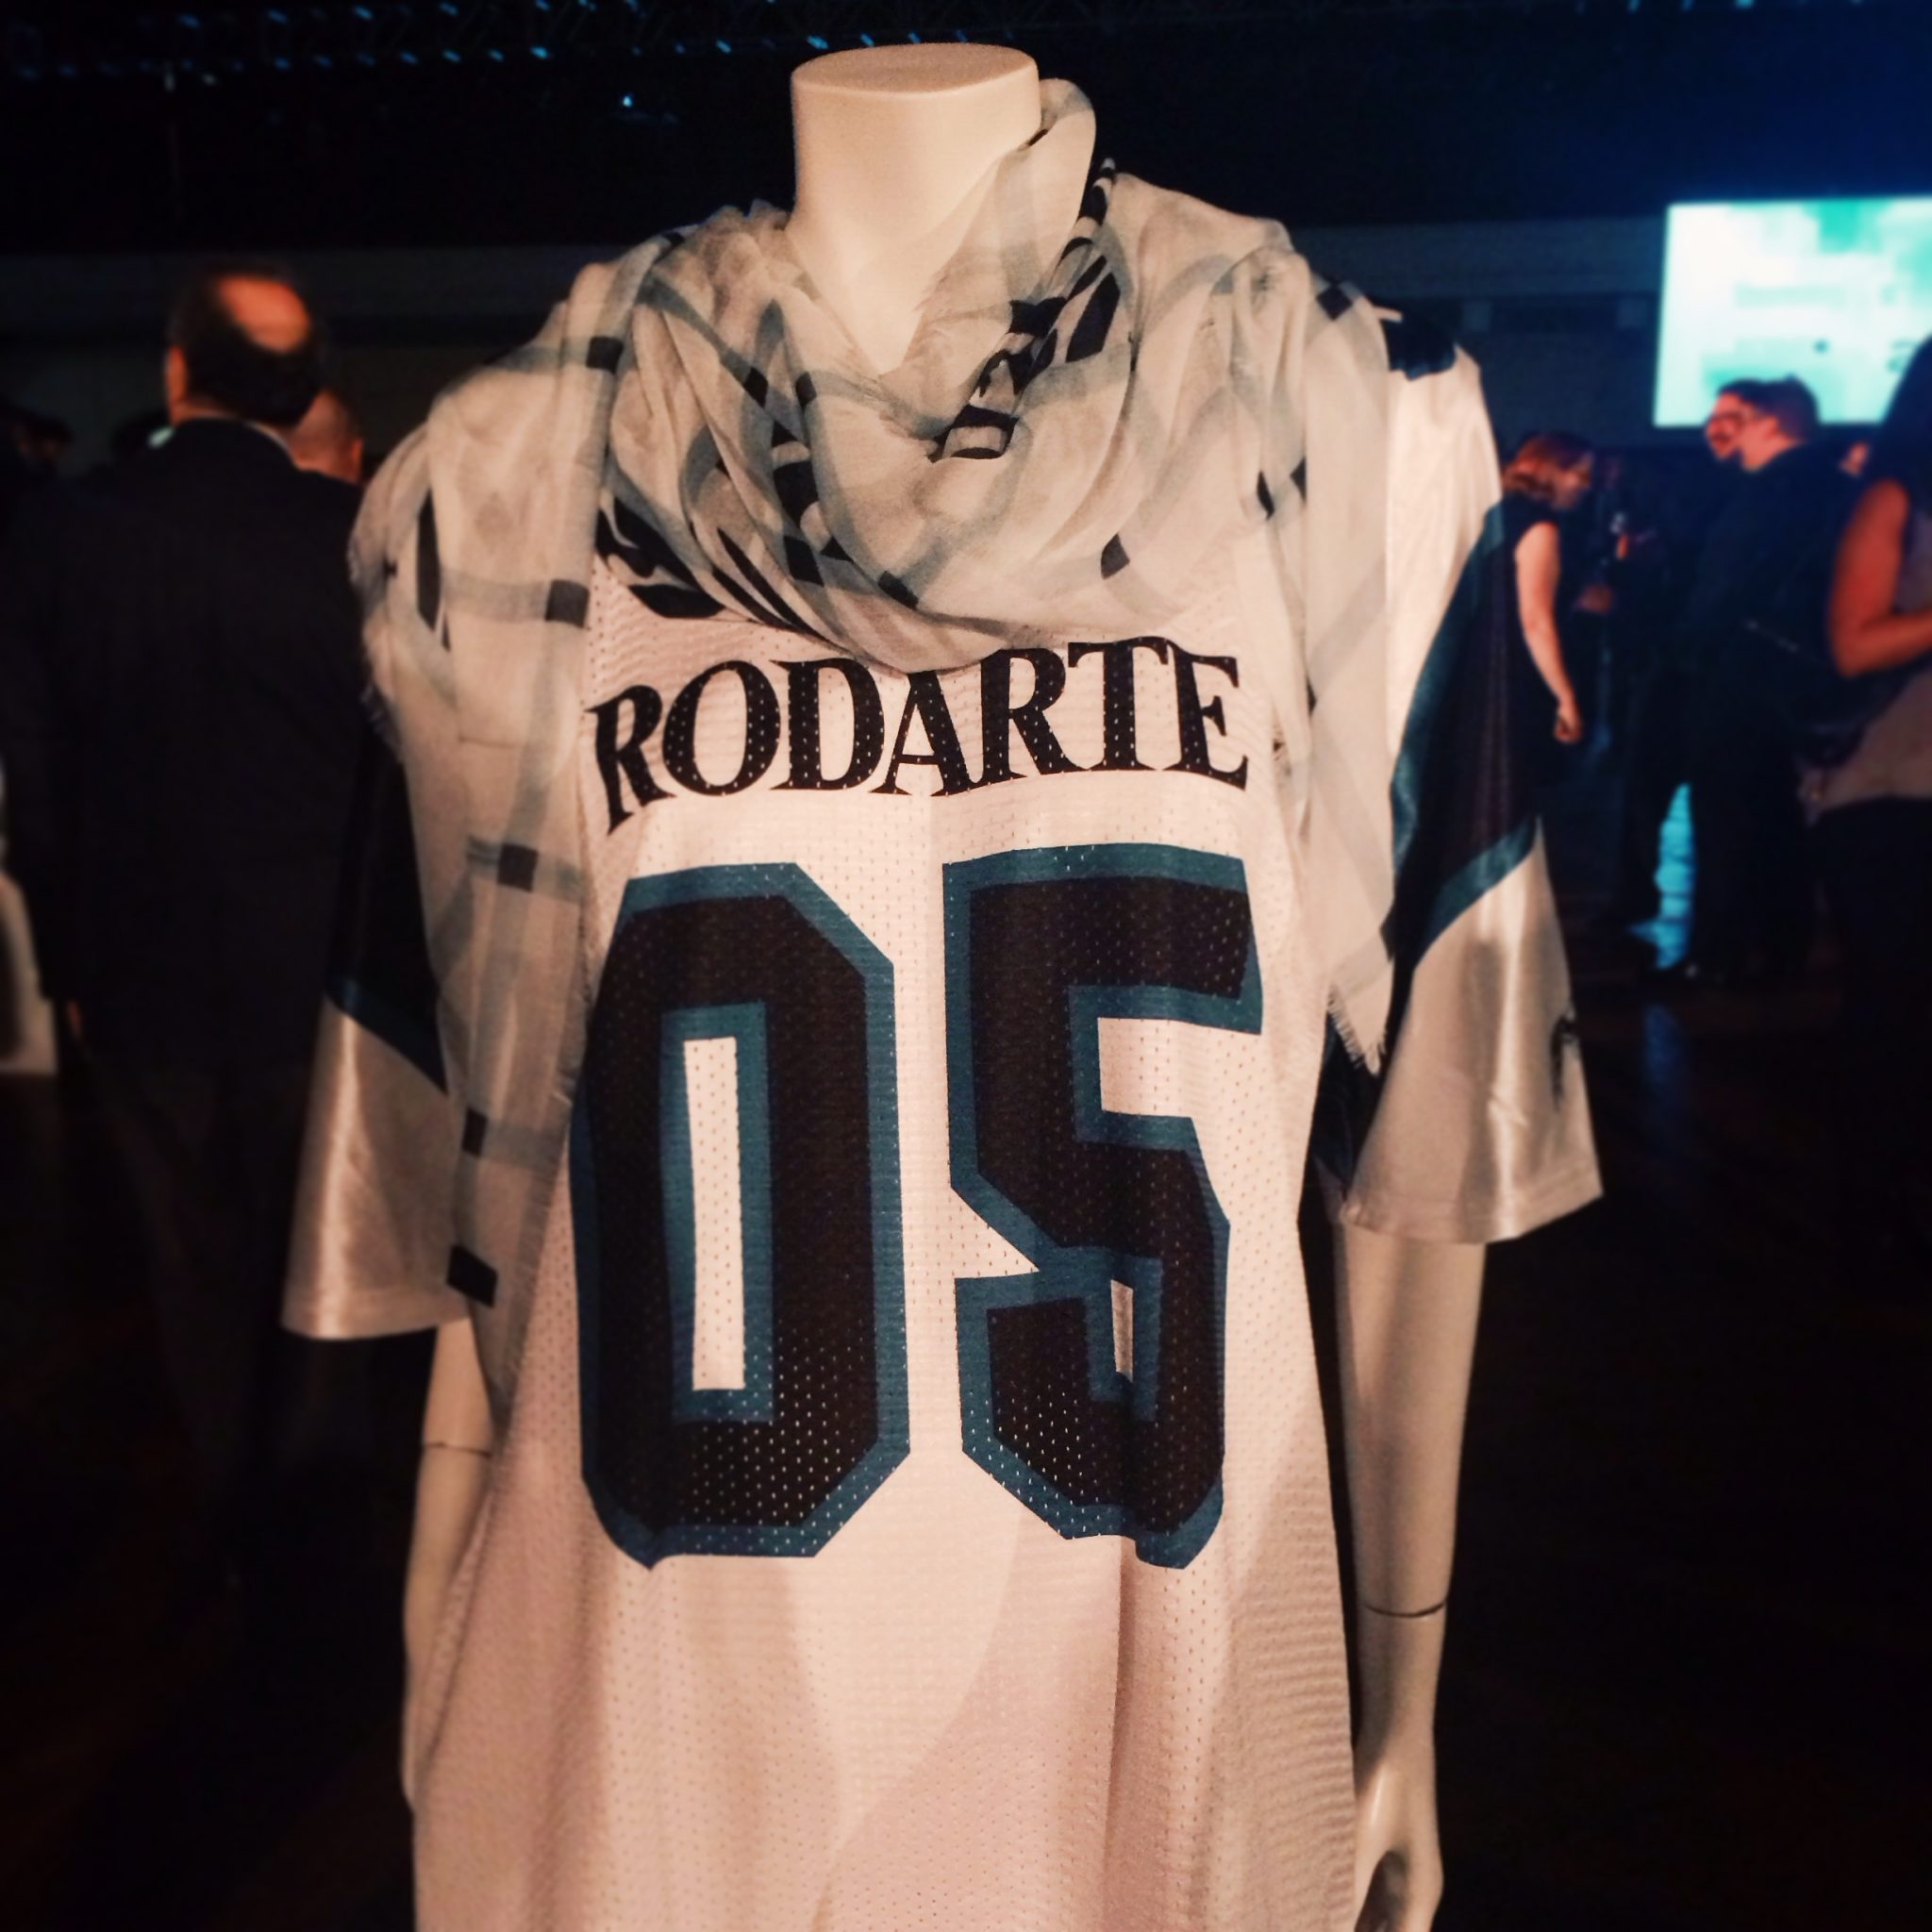 This Rodarte SS'14 Jersey was one of the items up for auction.